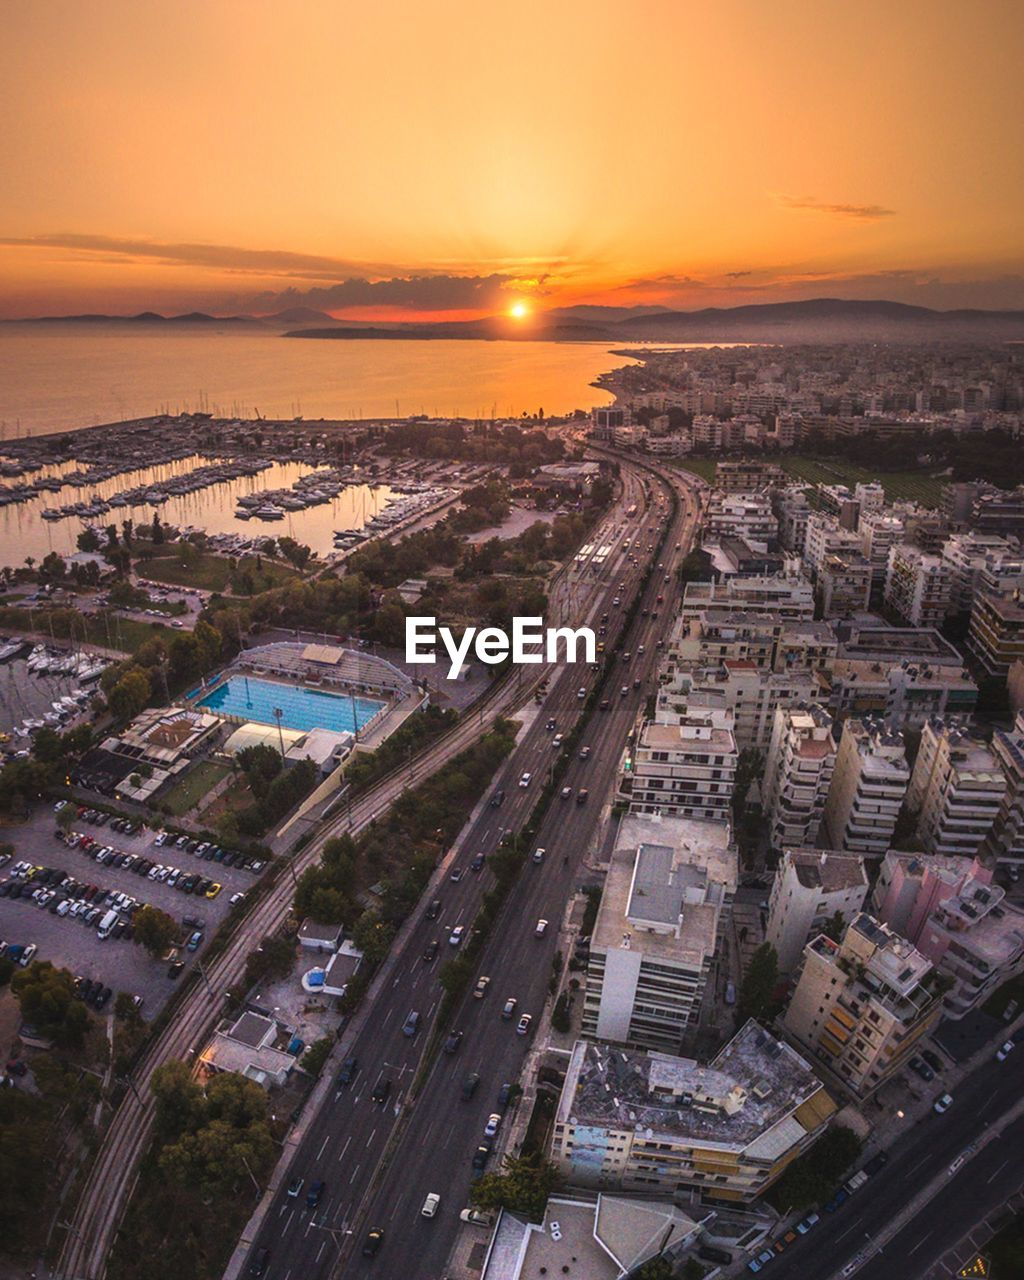 Aerial View Of City By Sea Against Sky During Sunset